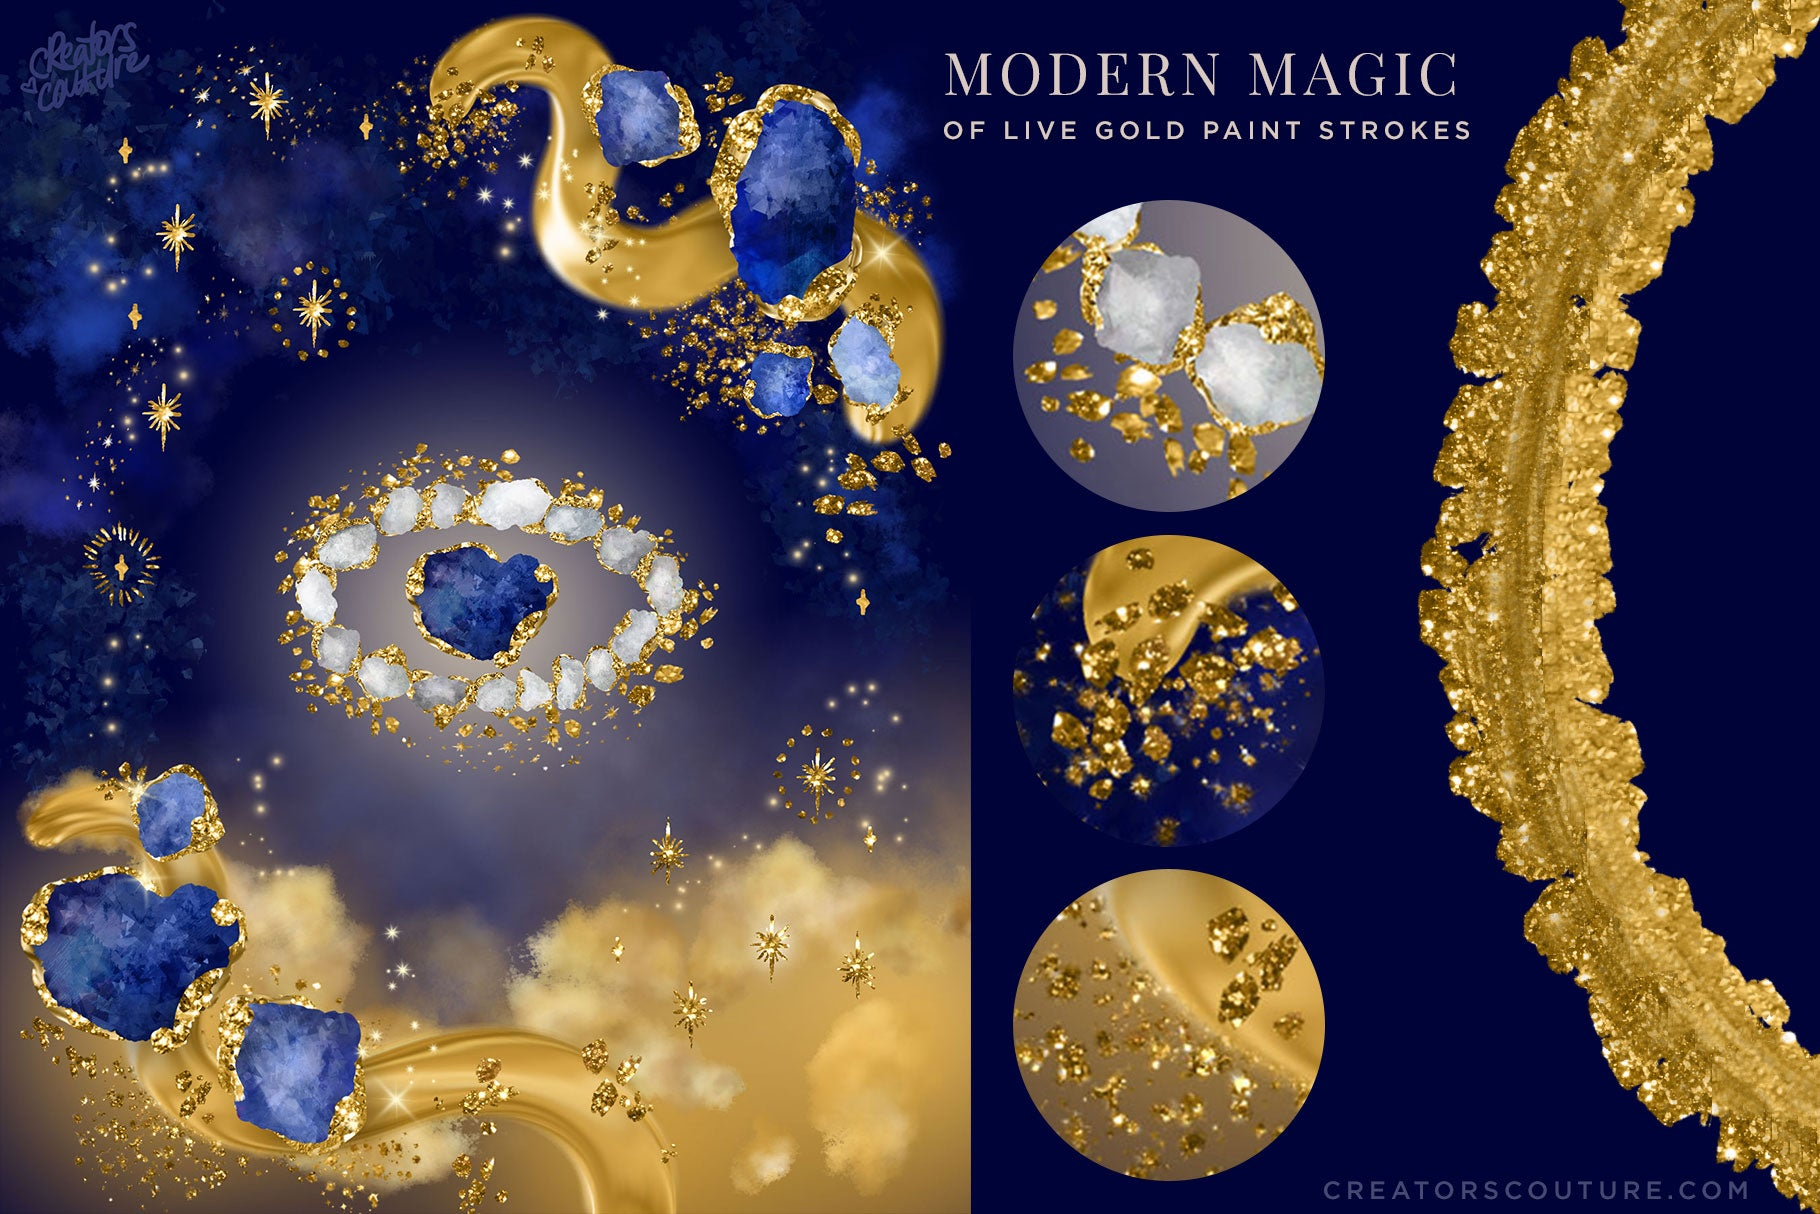 mystical gold paint stroke artwork made with 24k gold photoshop brushes